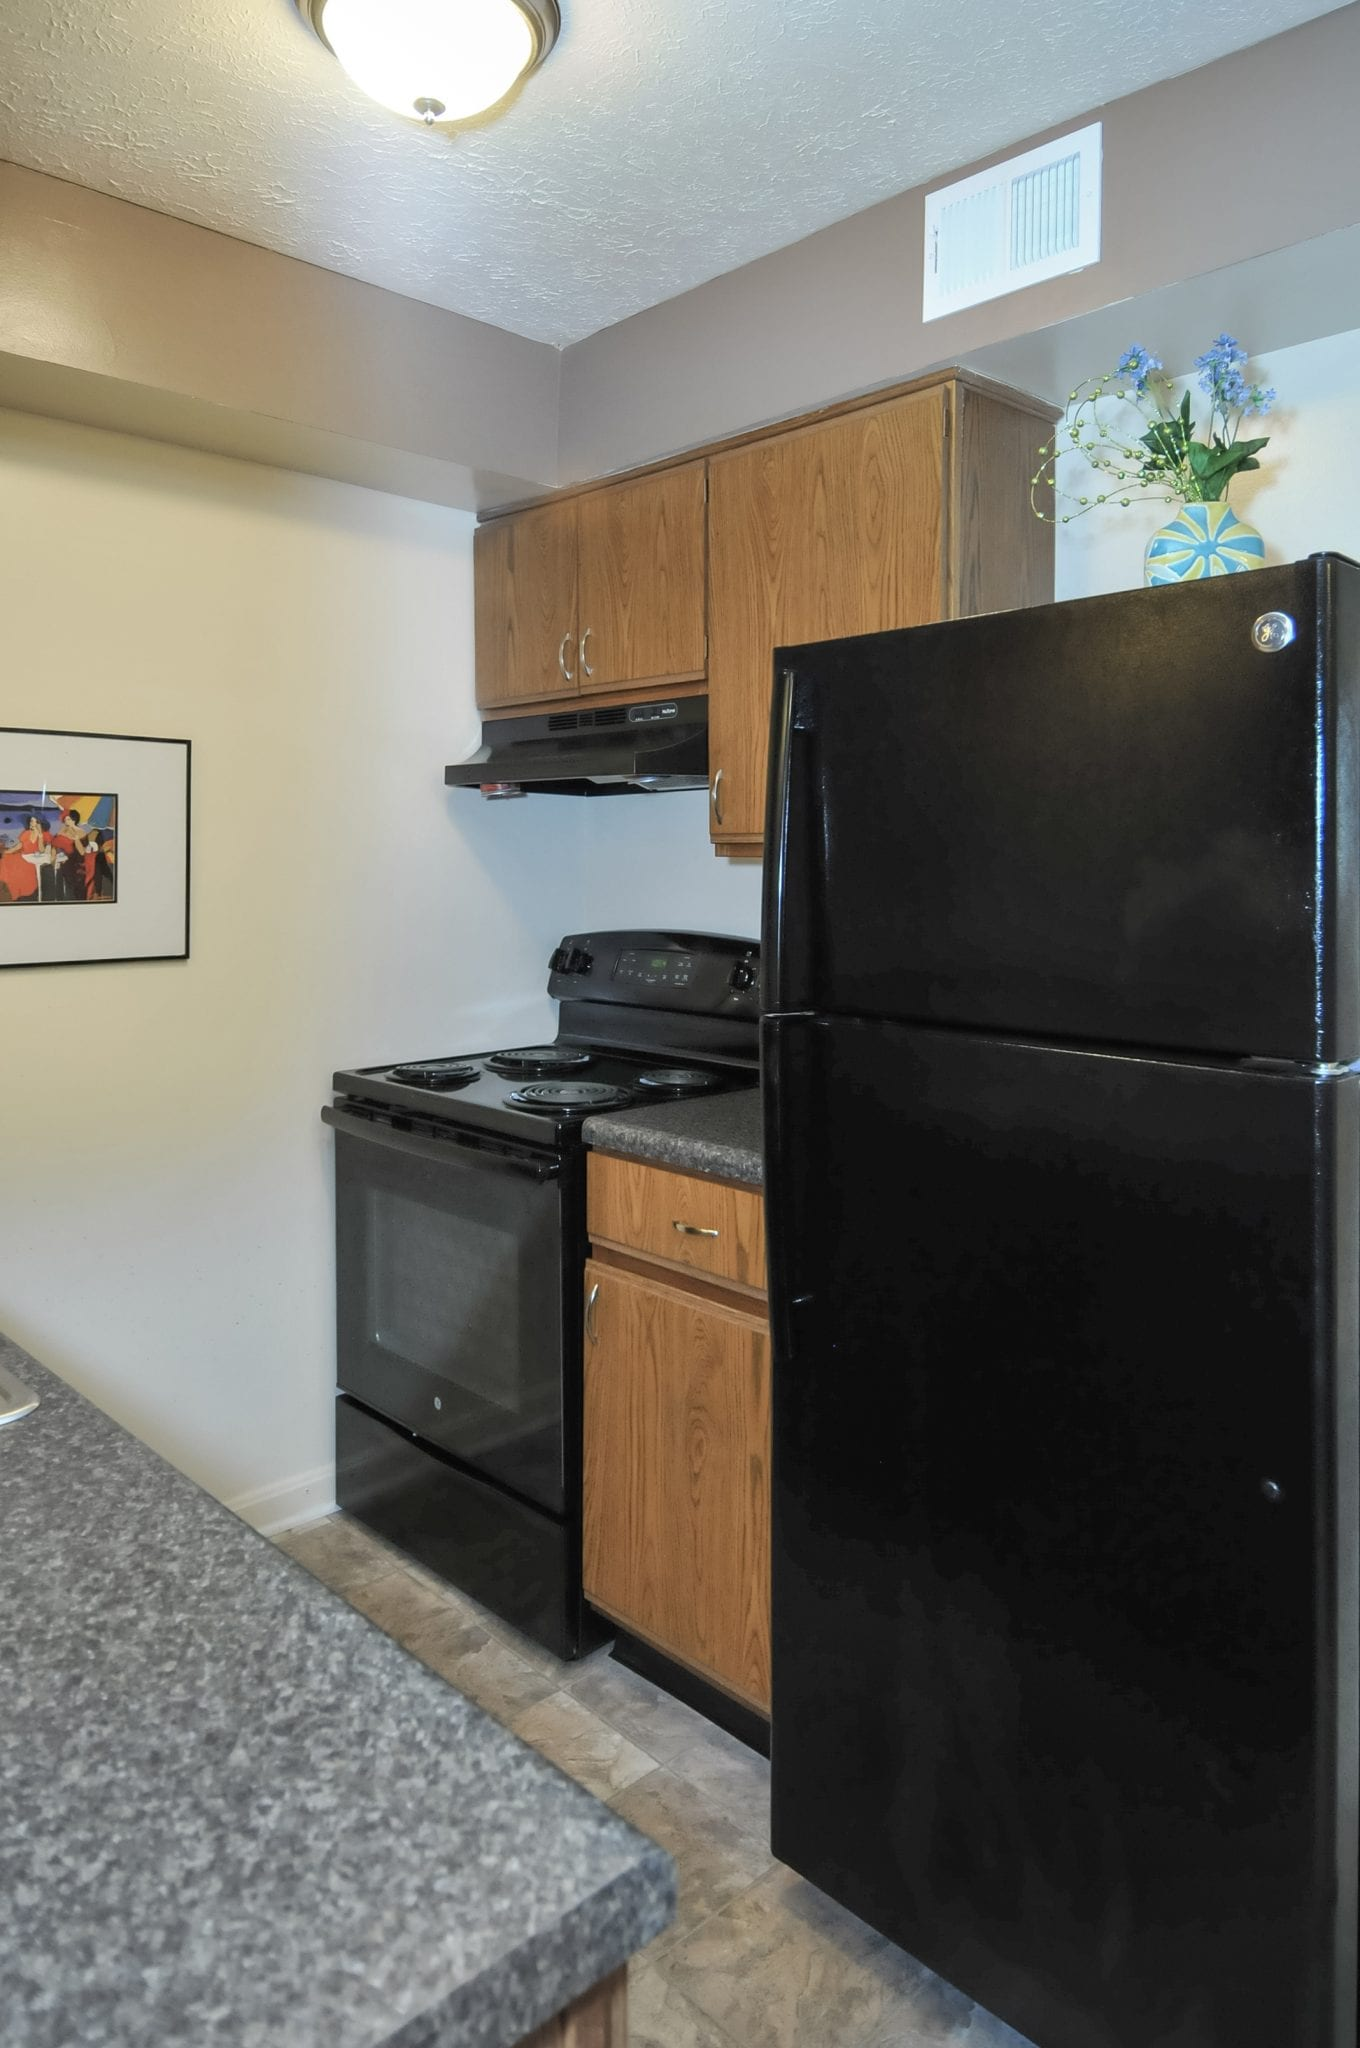 Highgate.springs.apartment.kitchen.refrigerator.range.new